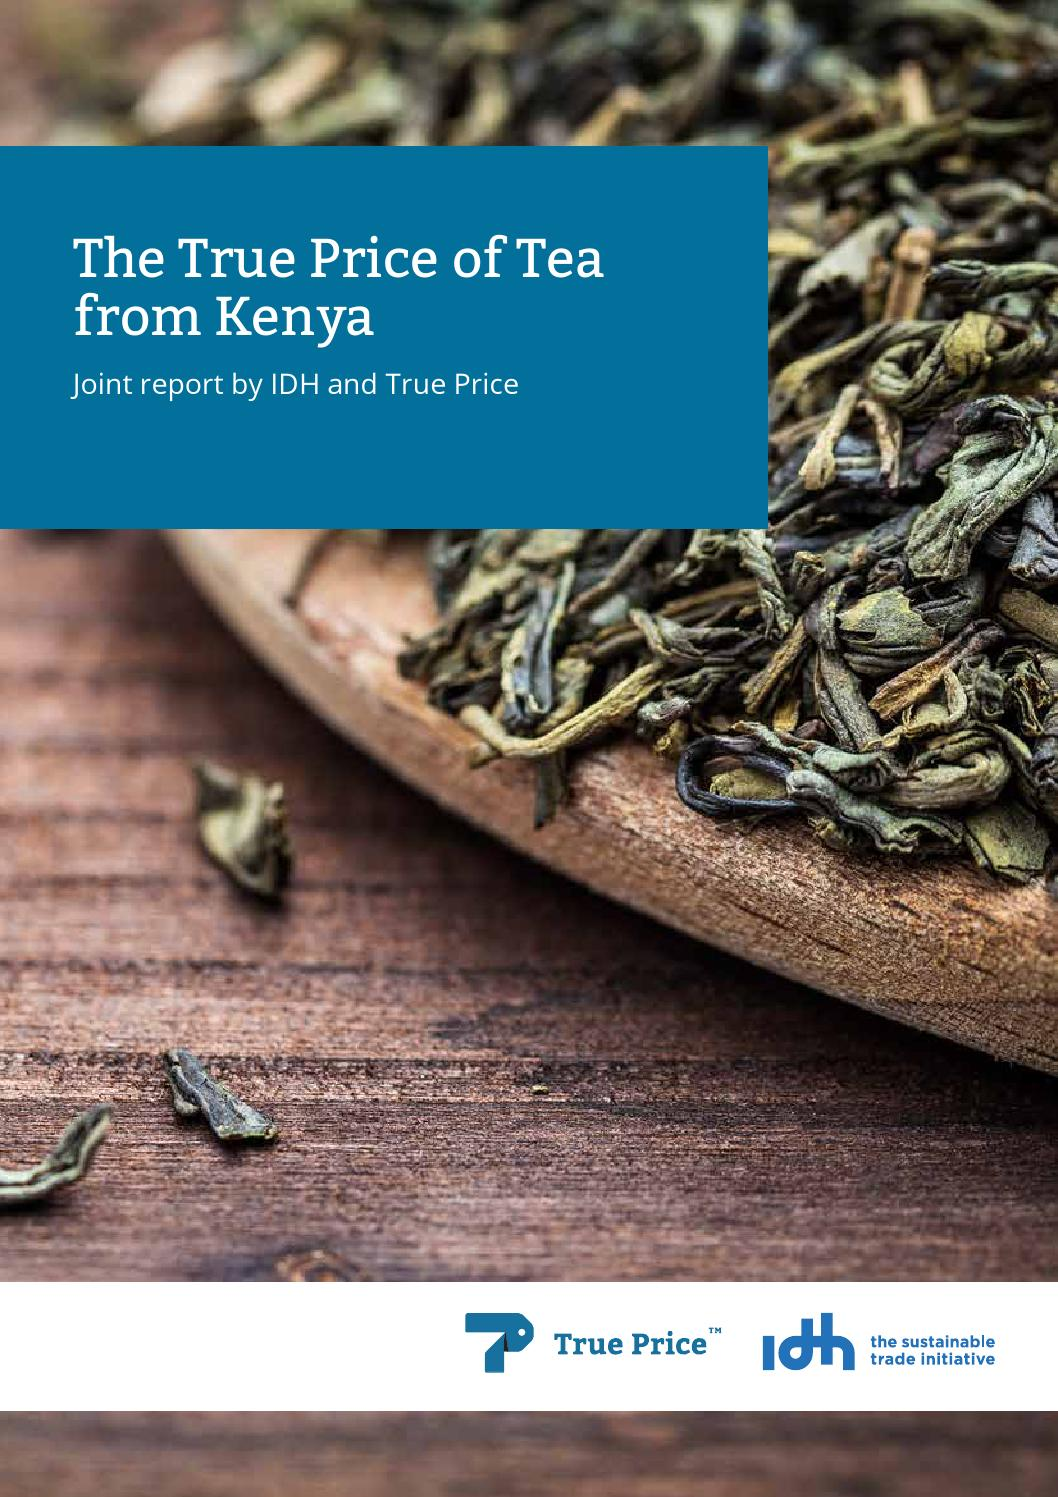 The true price of tea from kenya by IDH, The Sustainable